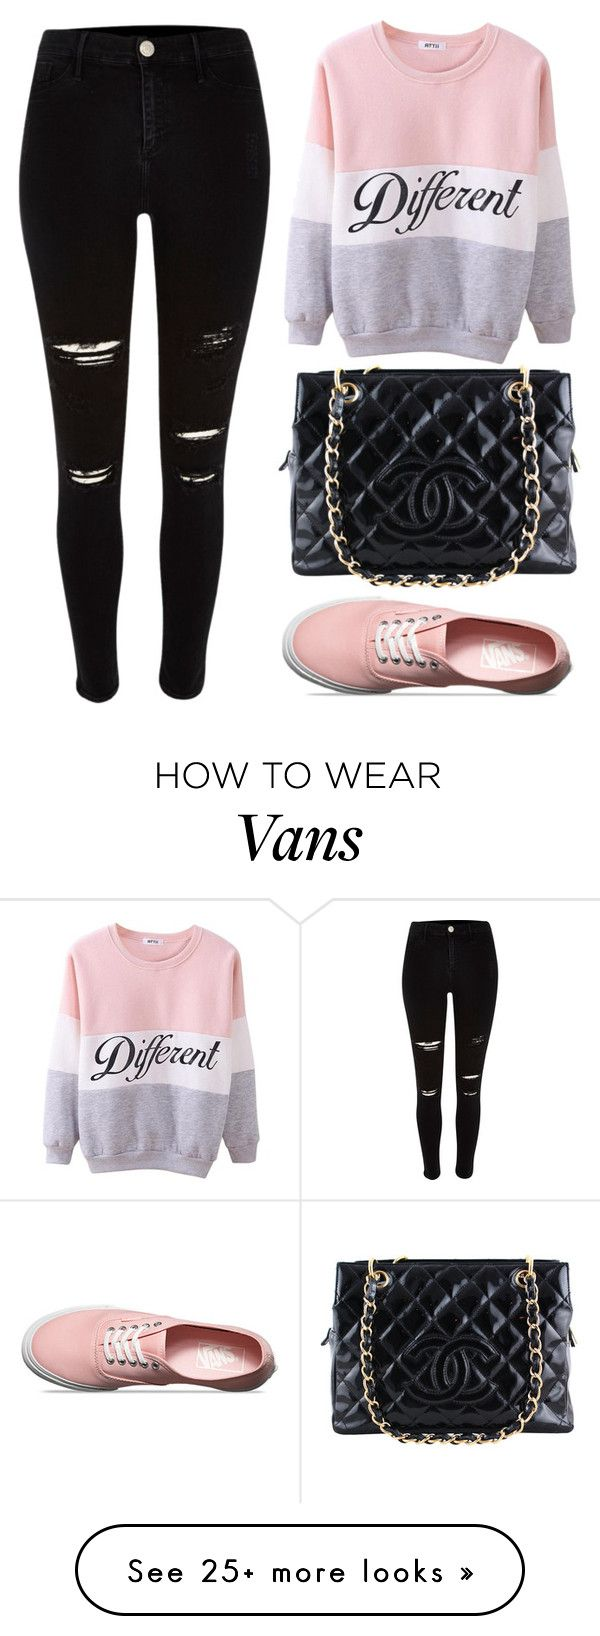 """Different"" by oaodaniela on Polyvore featuring Chanel and Vans"